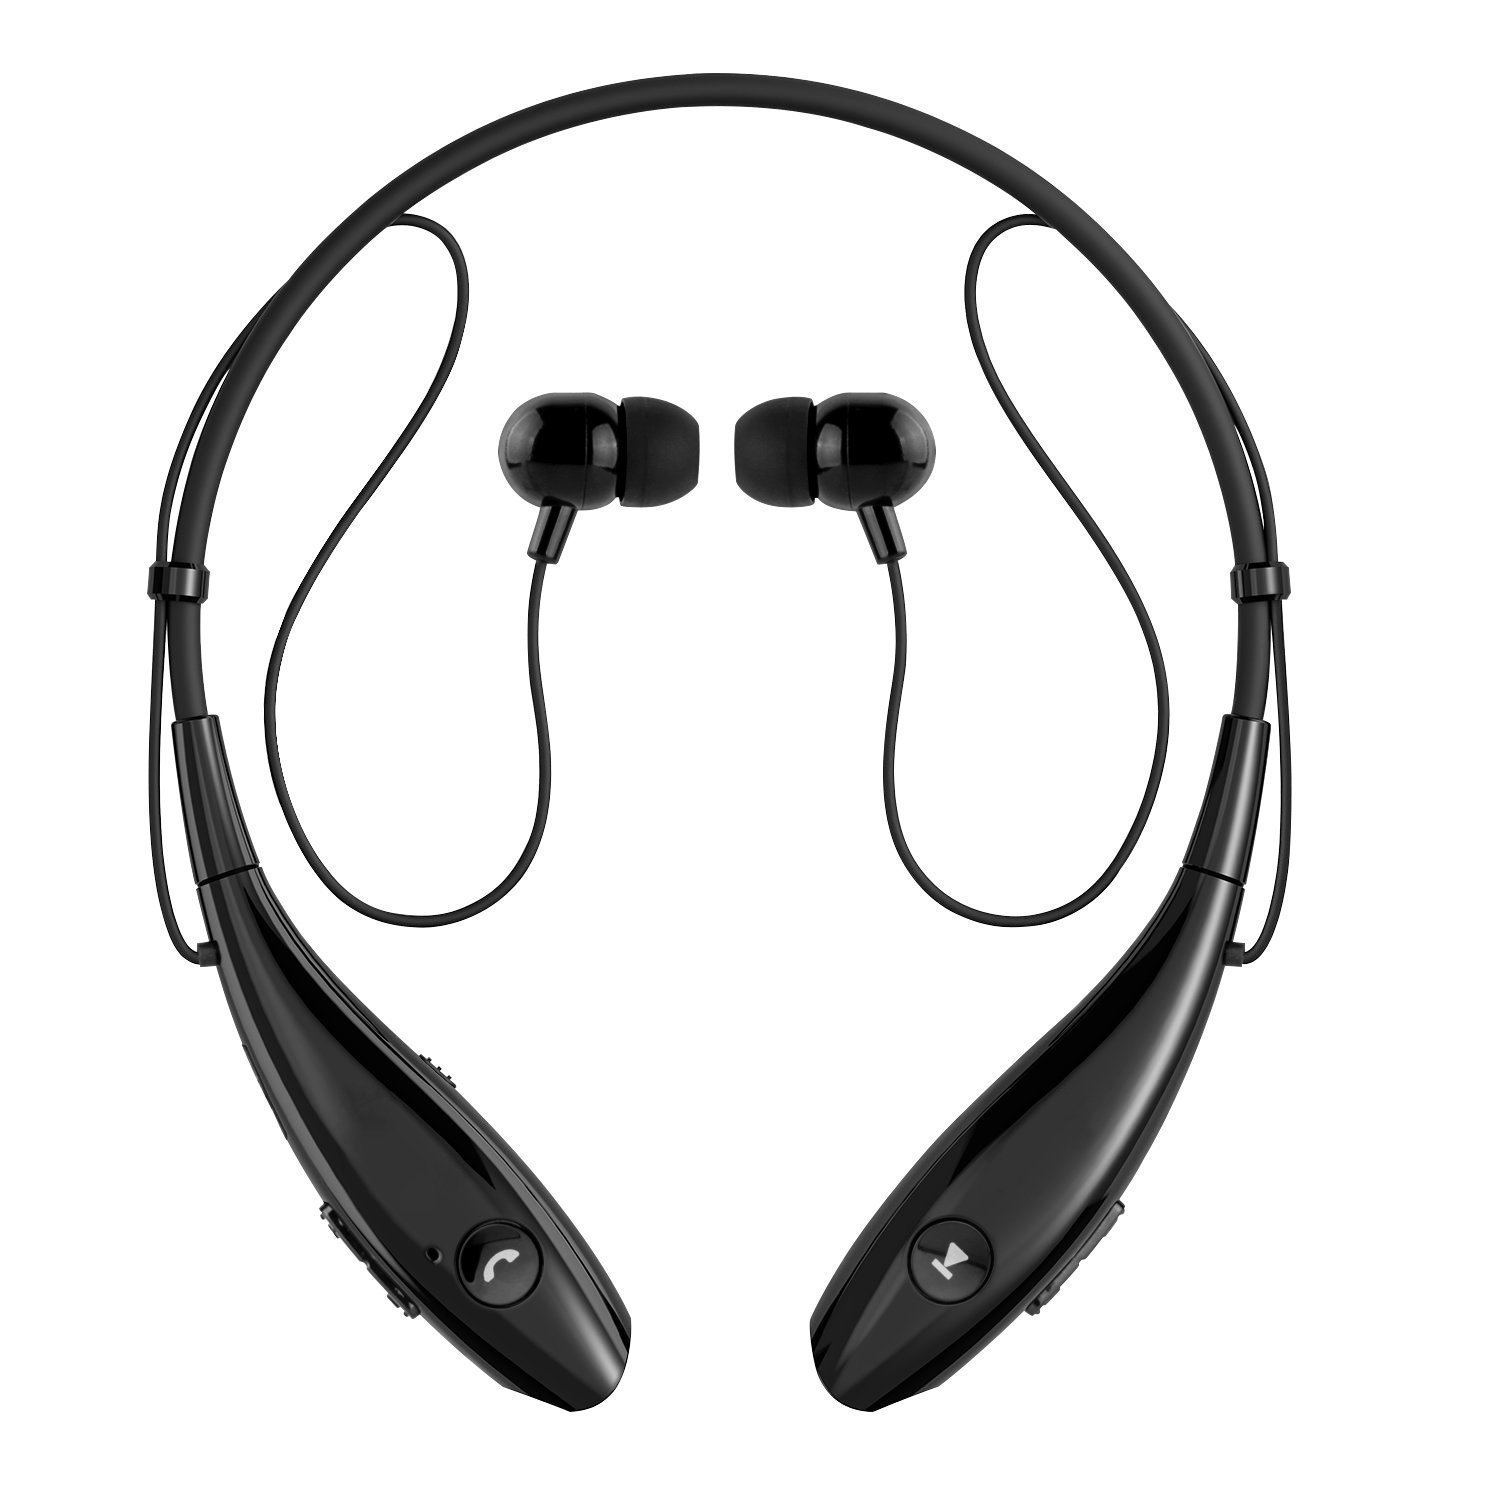 SoundPEATS Q900 Bluetooth Headphones